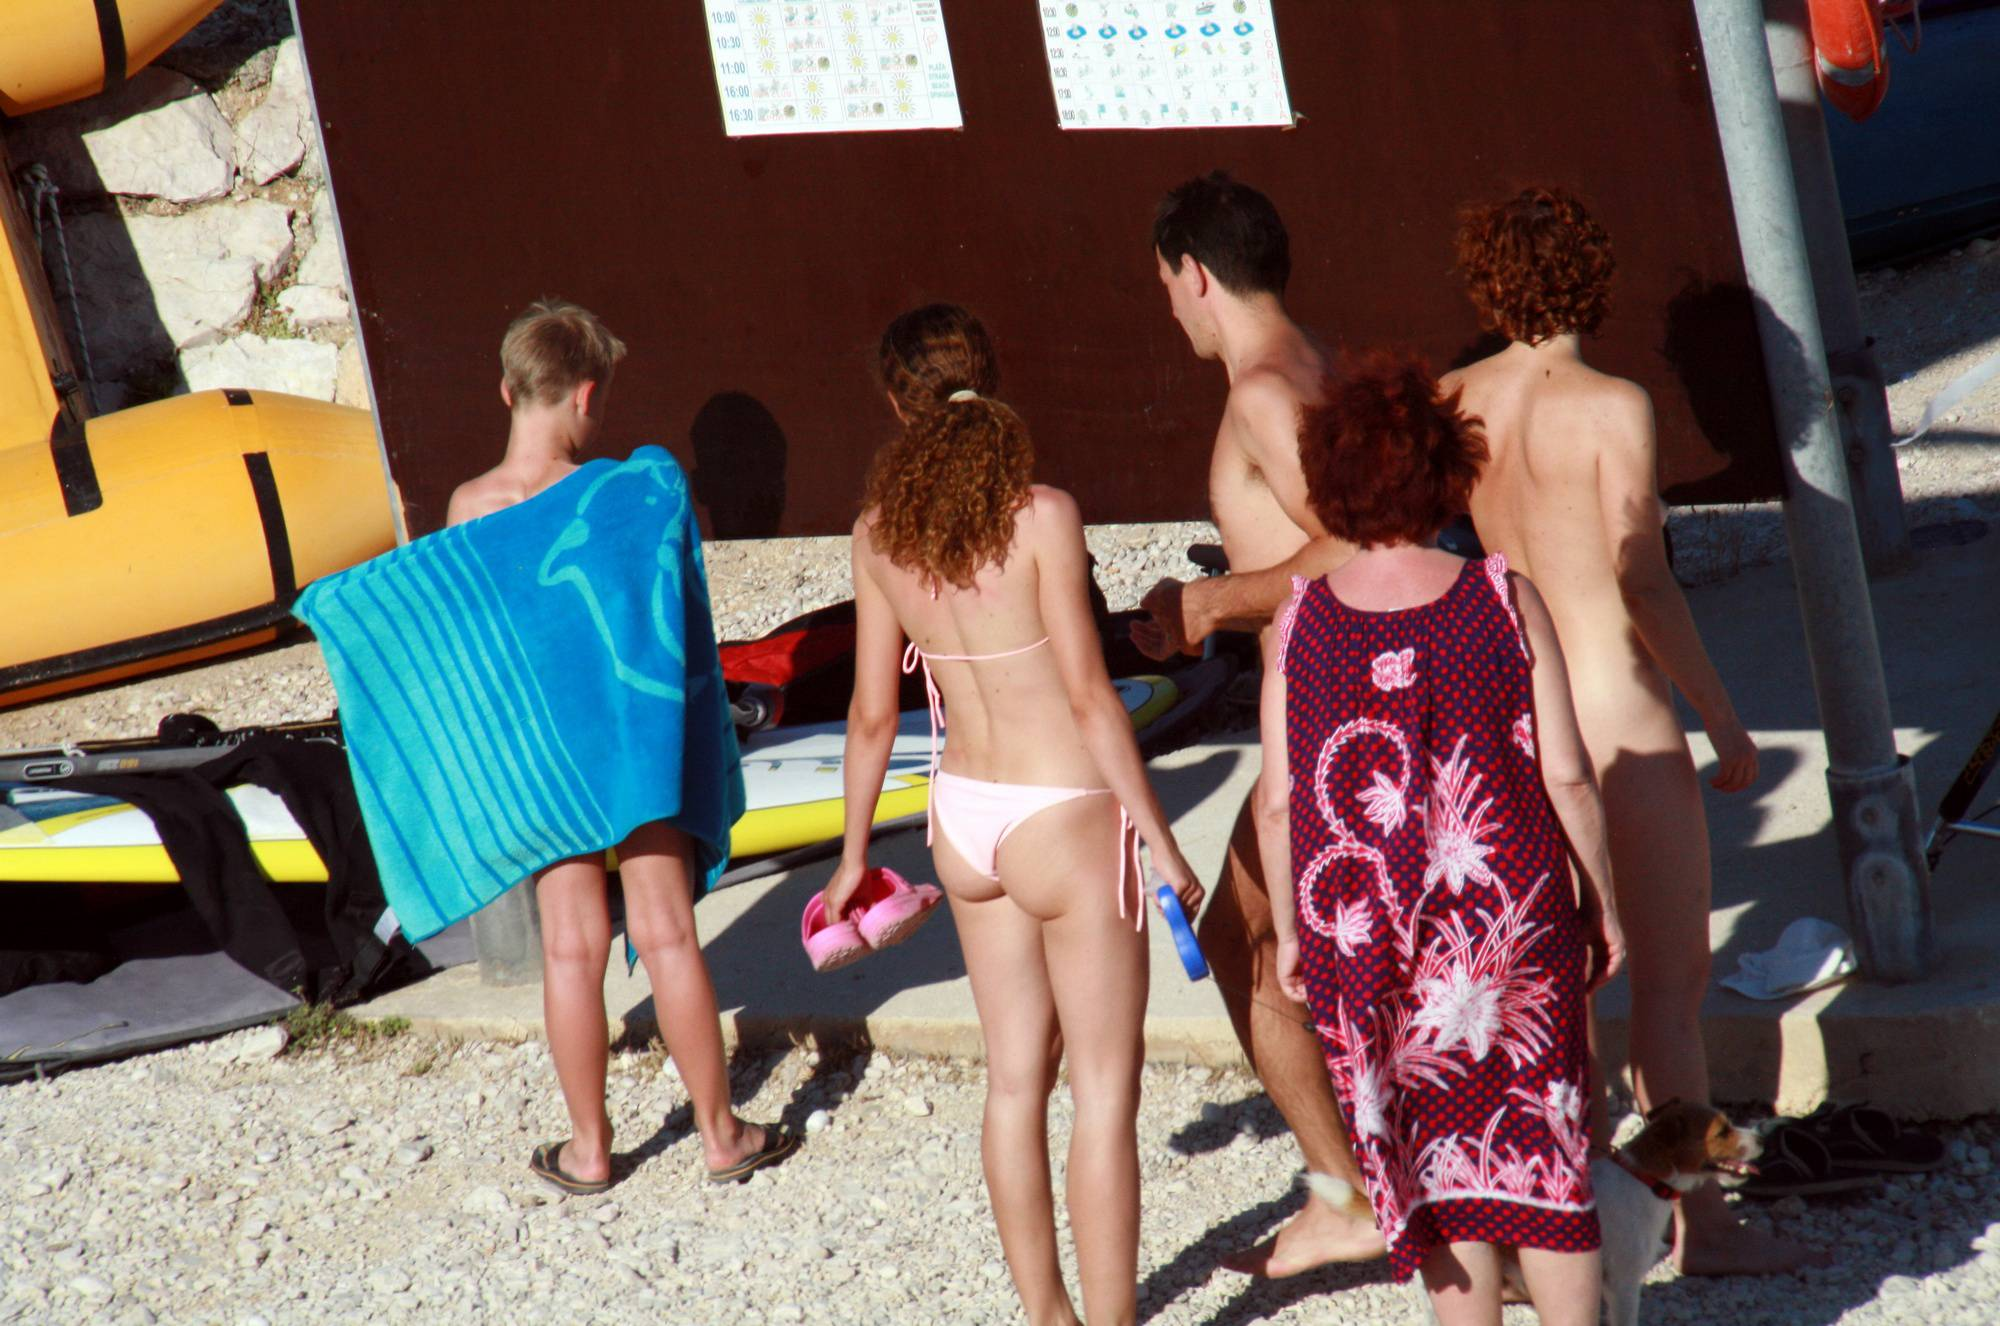 Pure Nudism Images-Nude Beach Resting Board - 3